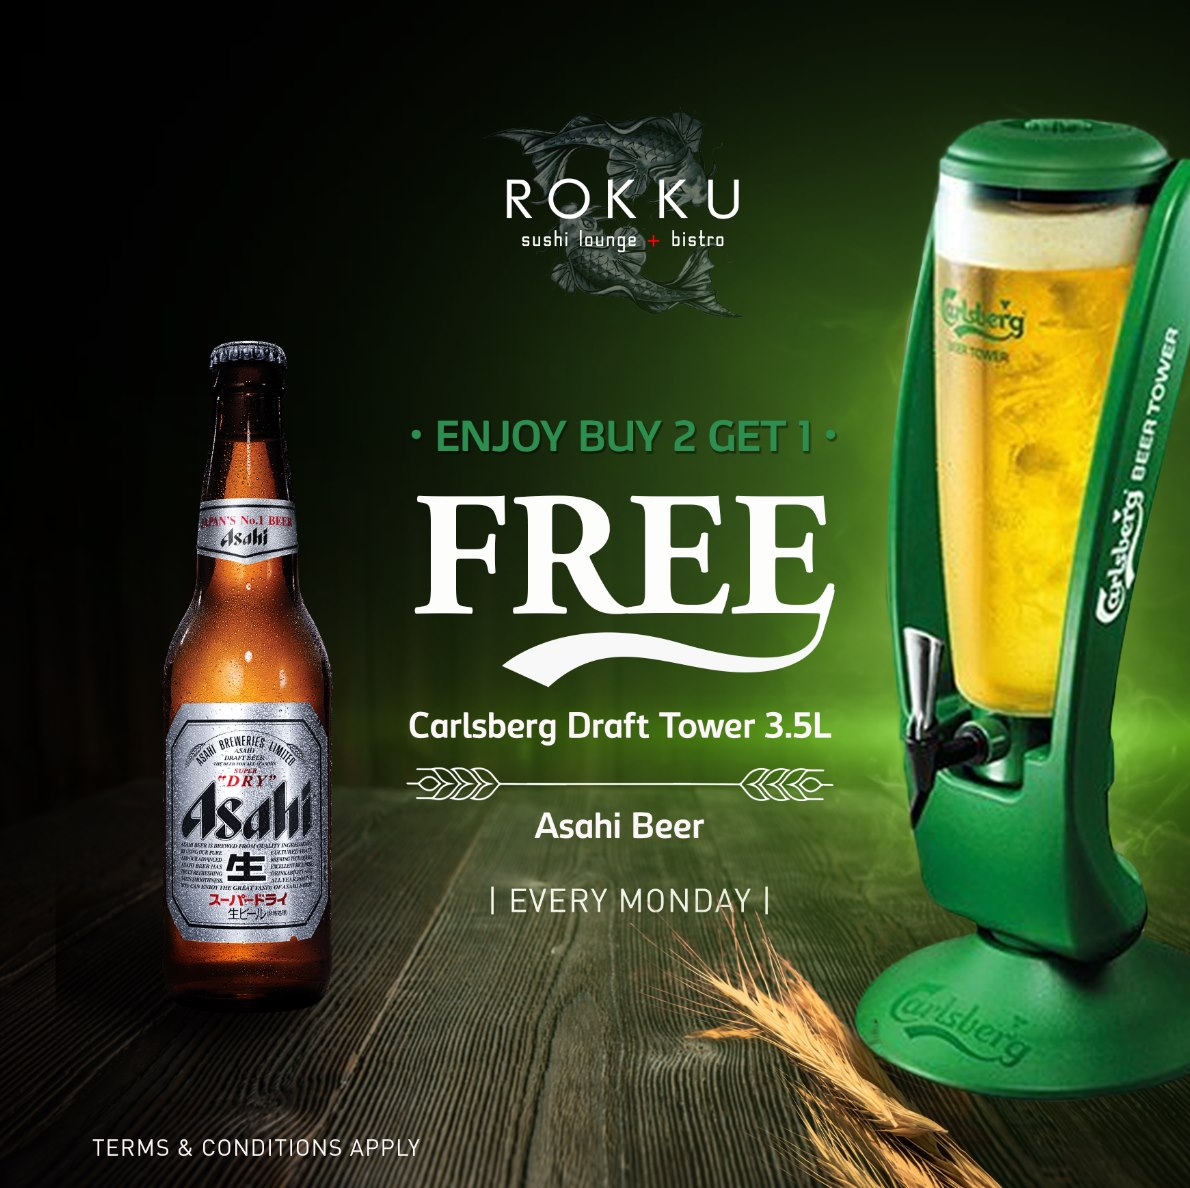 HAPPY HOUR MONDAYS AT ROKKU ON APRIL 12TH